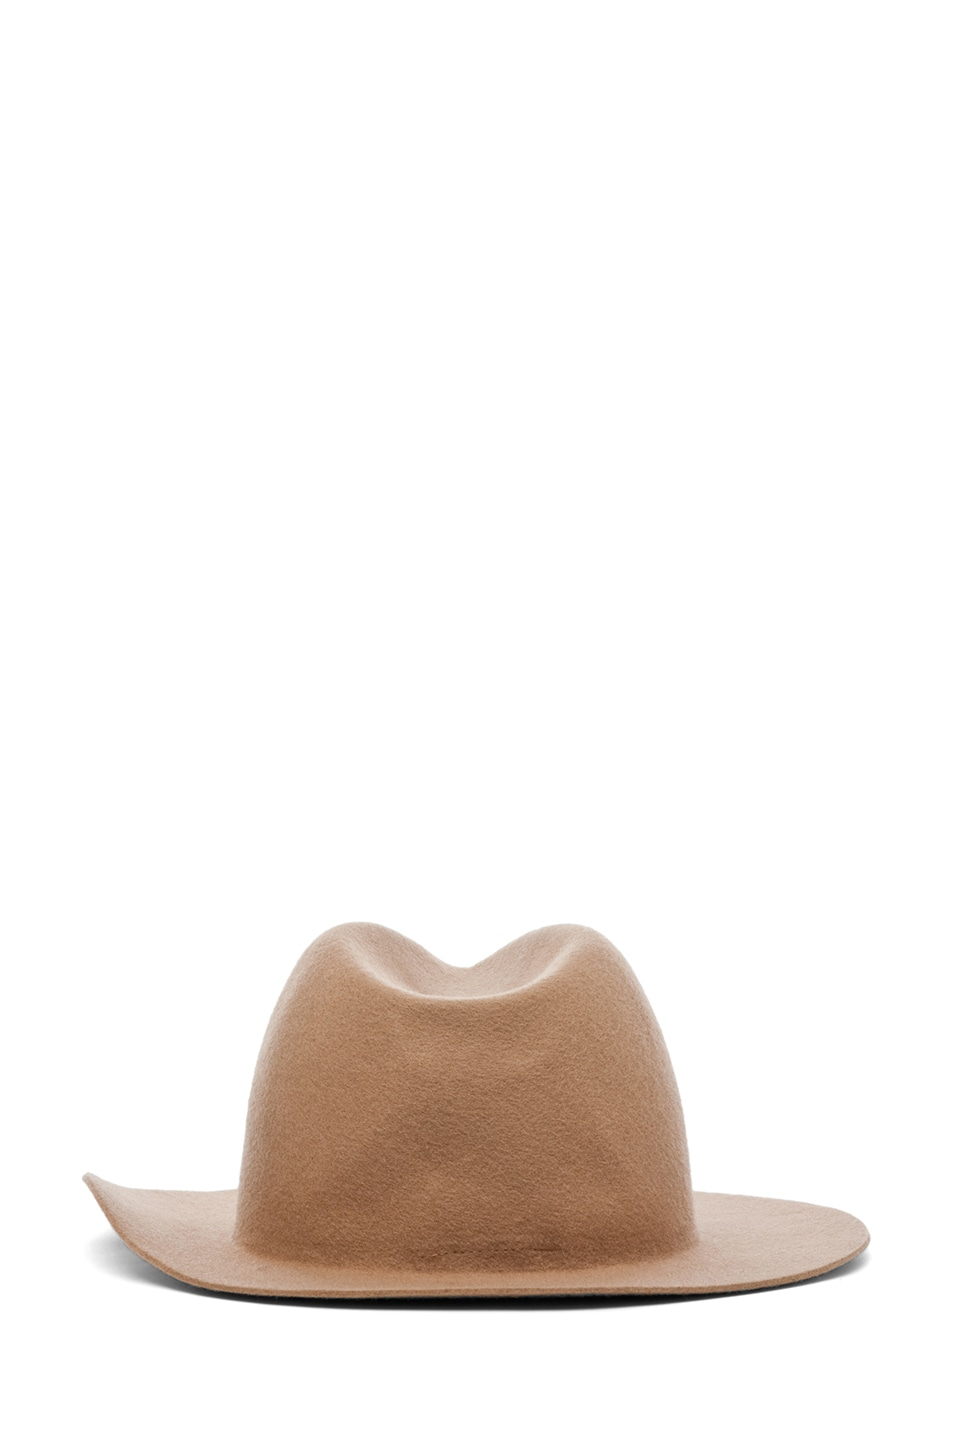 Image 4 of A.P.C. Chapeau Hat in Tan